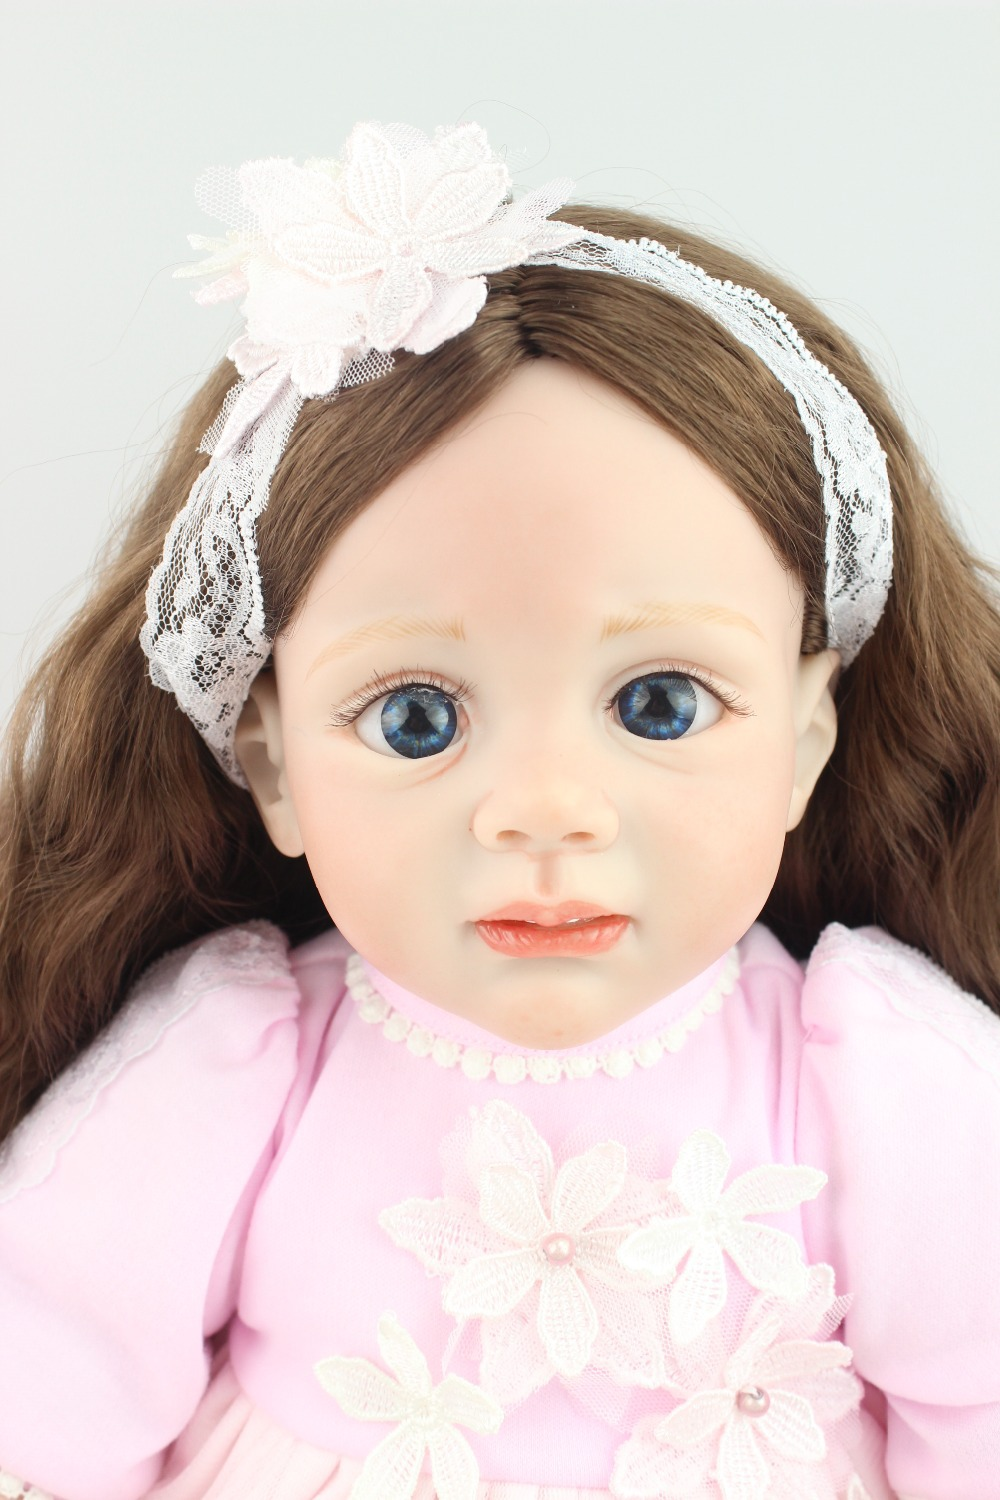 2015new design 24inch Reborn Toddler baby doll Fridolin rooted hair lifelike sweet girl real gentle touch2015new design 24inch Reborn Toddler baby doll Fridolin rooted hair lifelike sweet girl real gentle touch